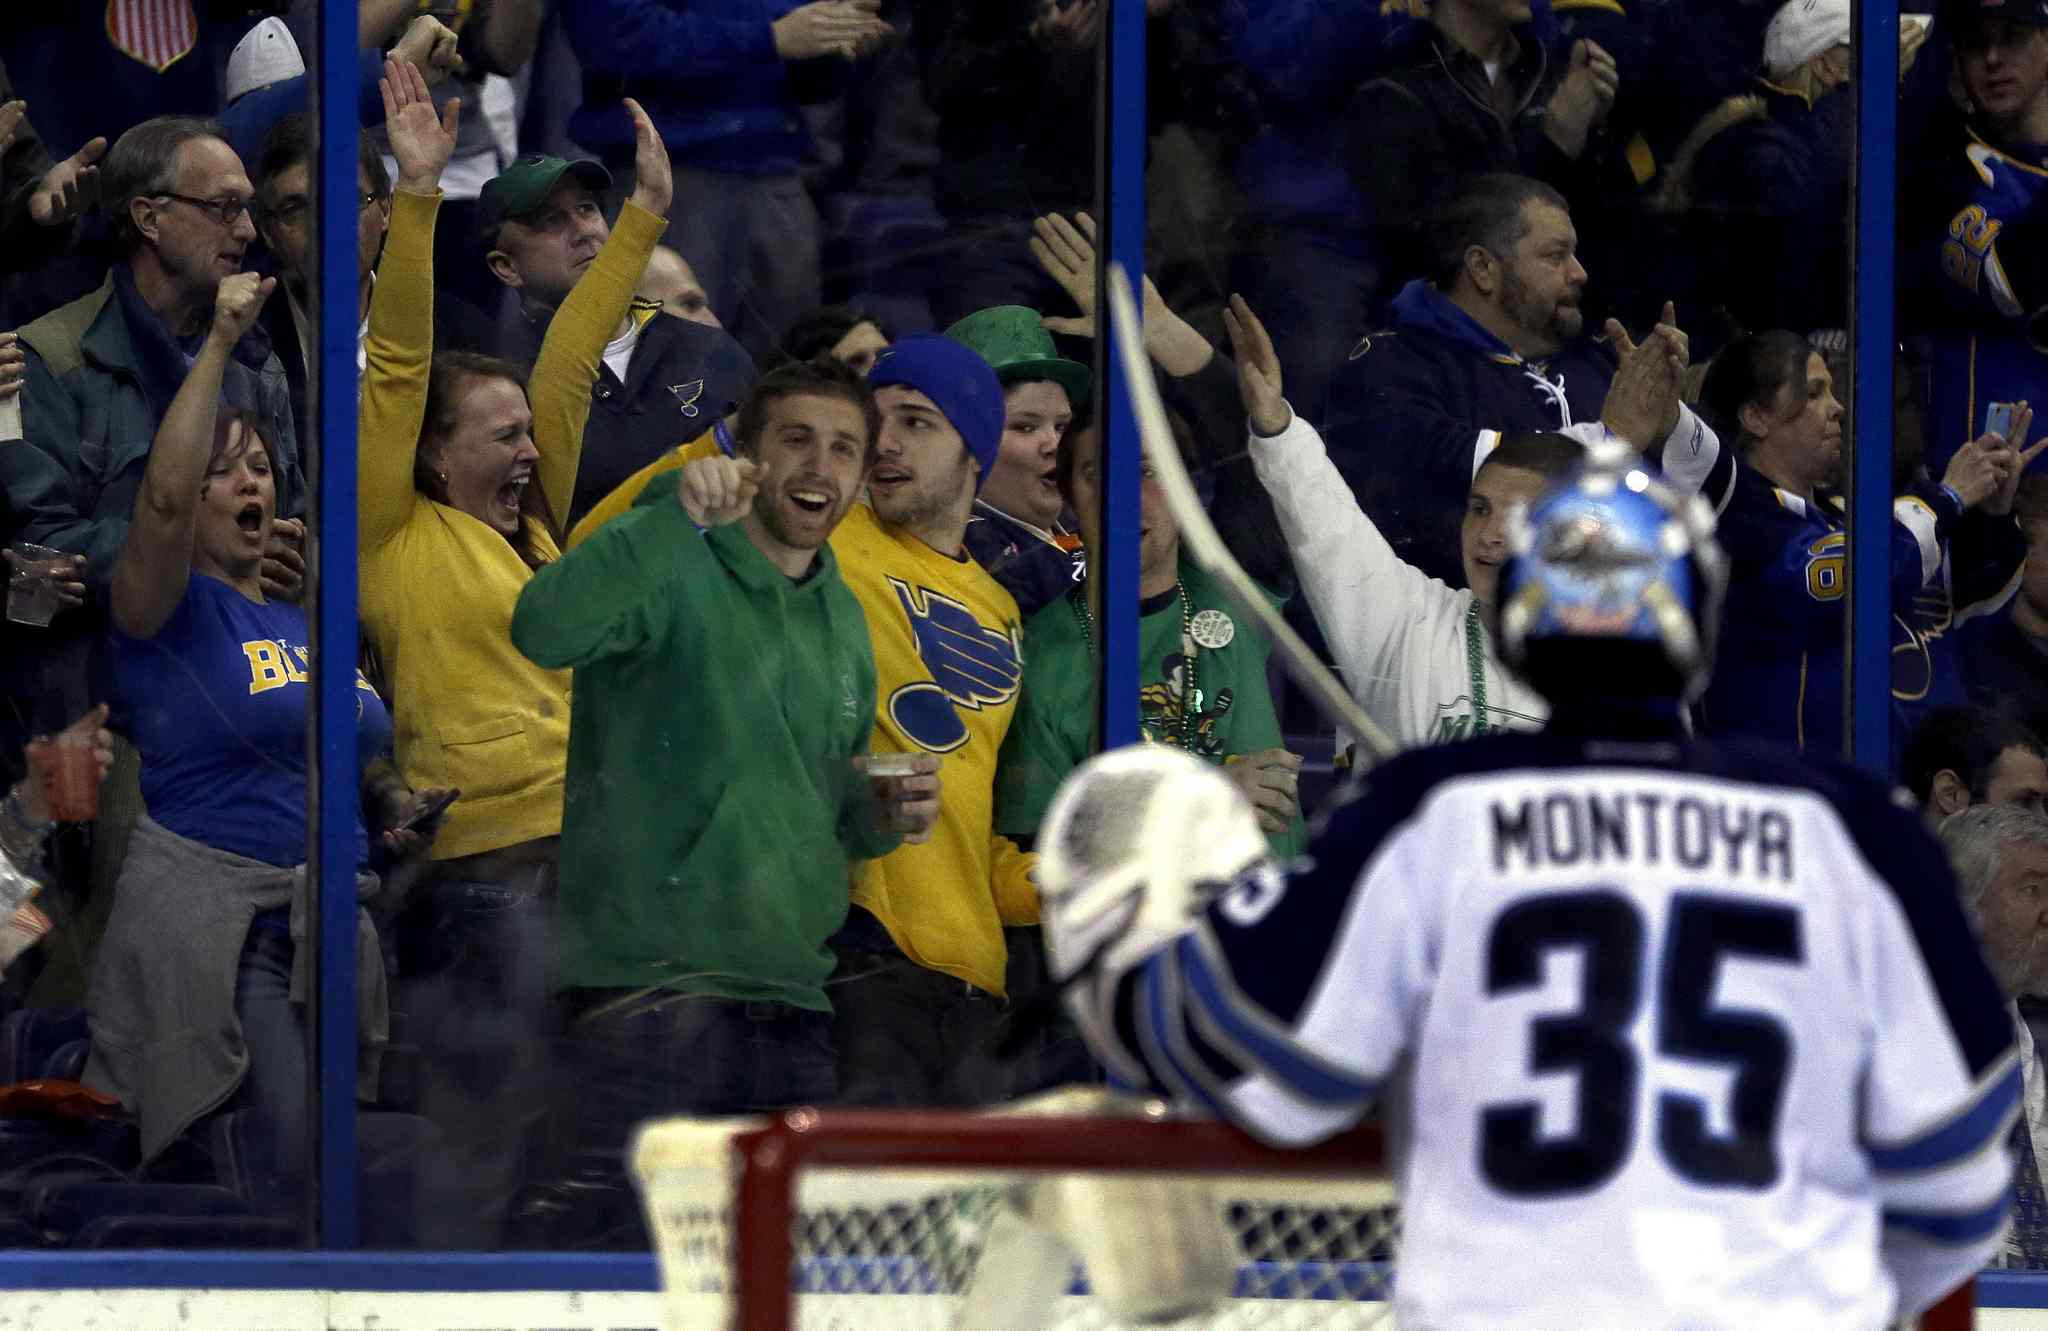 Blues fans celebrate after Jets goalie Al Montoya allowed a goal by Brenden Morrow during the second period.